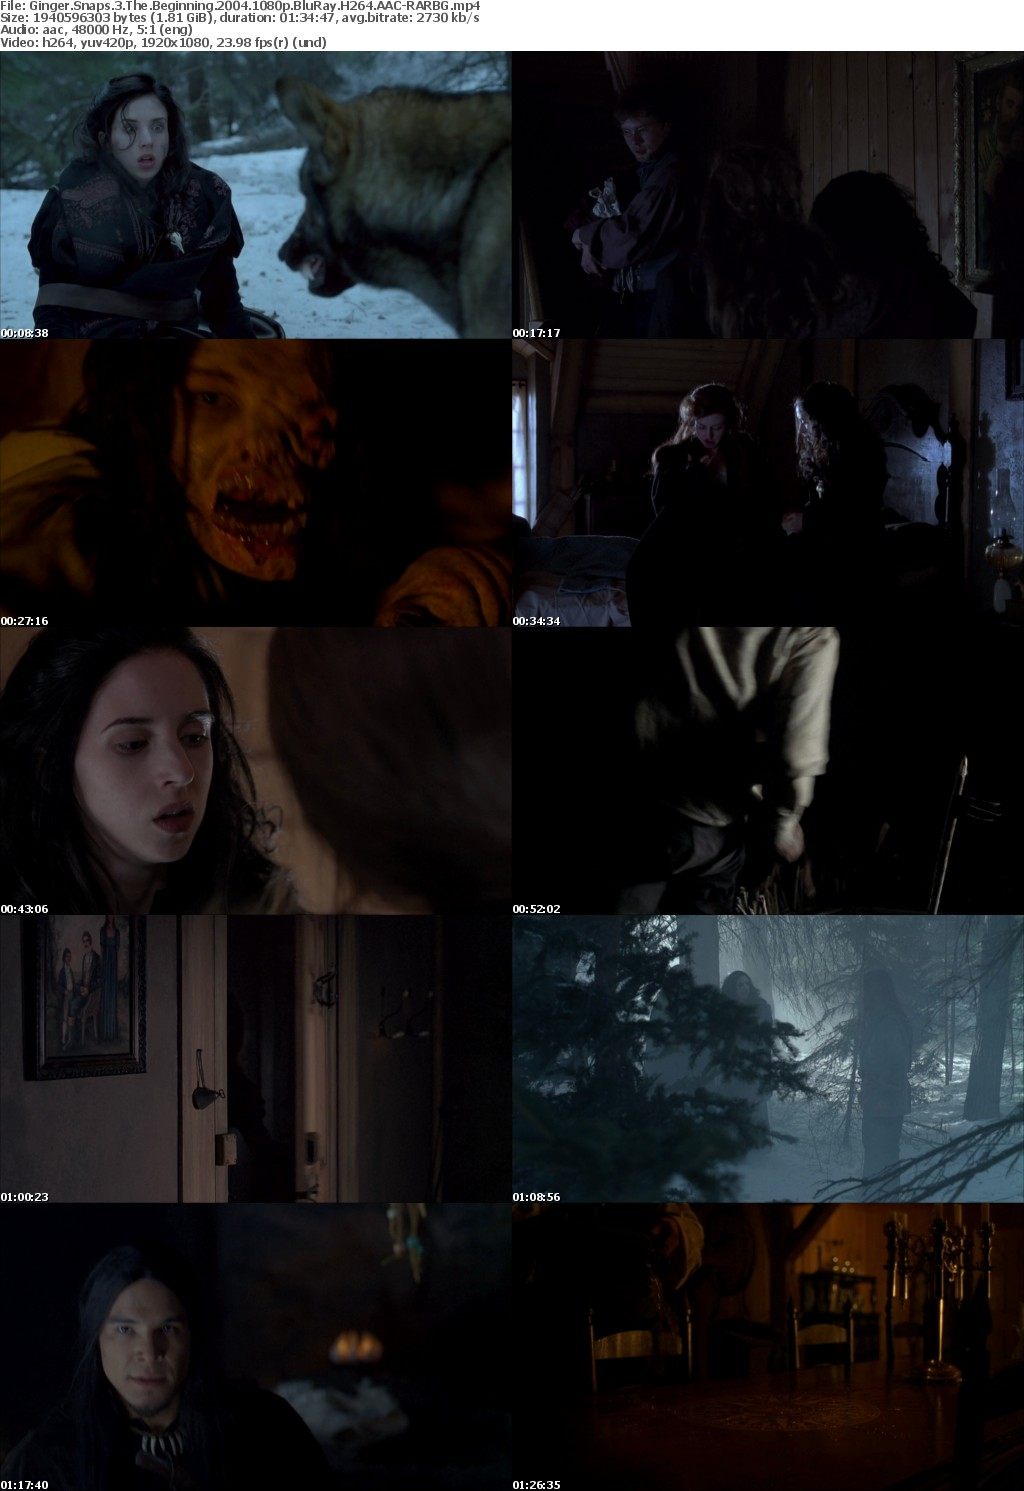 Ginger Snaps 3 The Beginning (2004) 1080p BluRay H264 AAC-RARBG